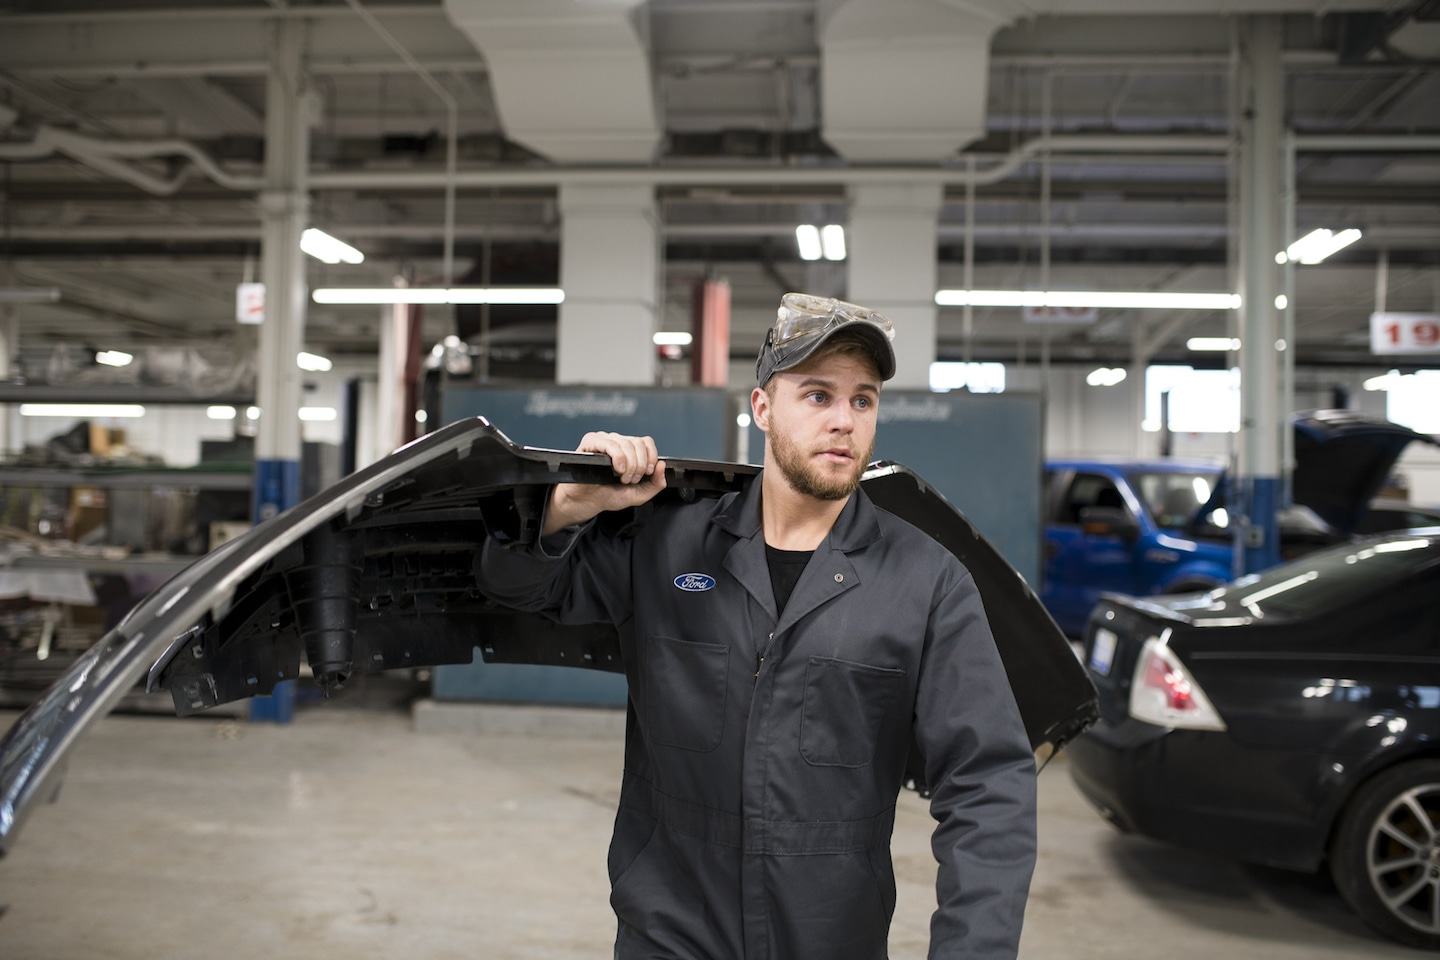 Mechanic carrying bumper through body shop